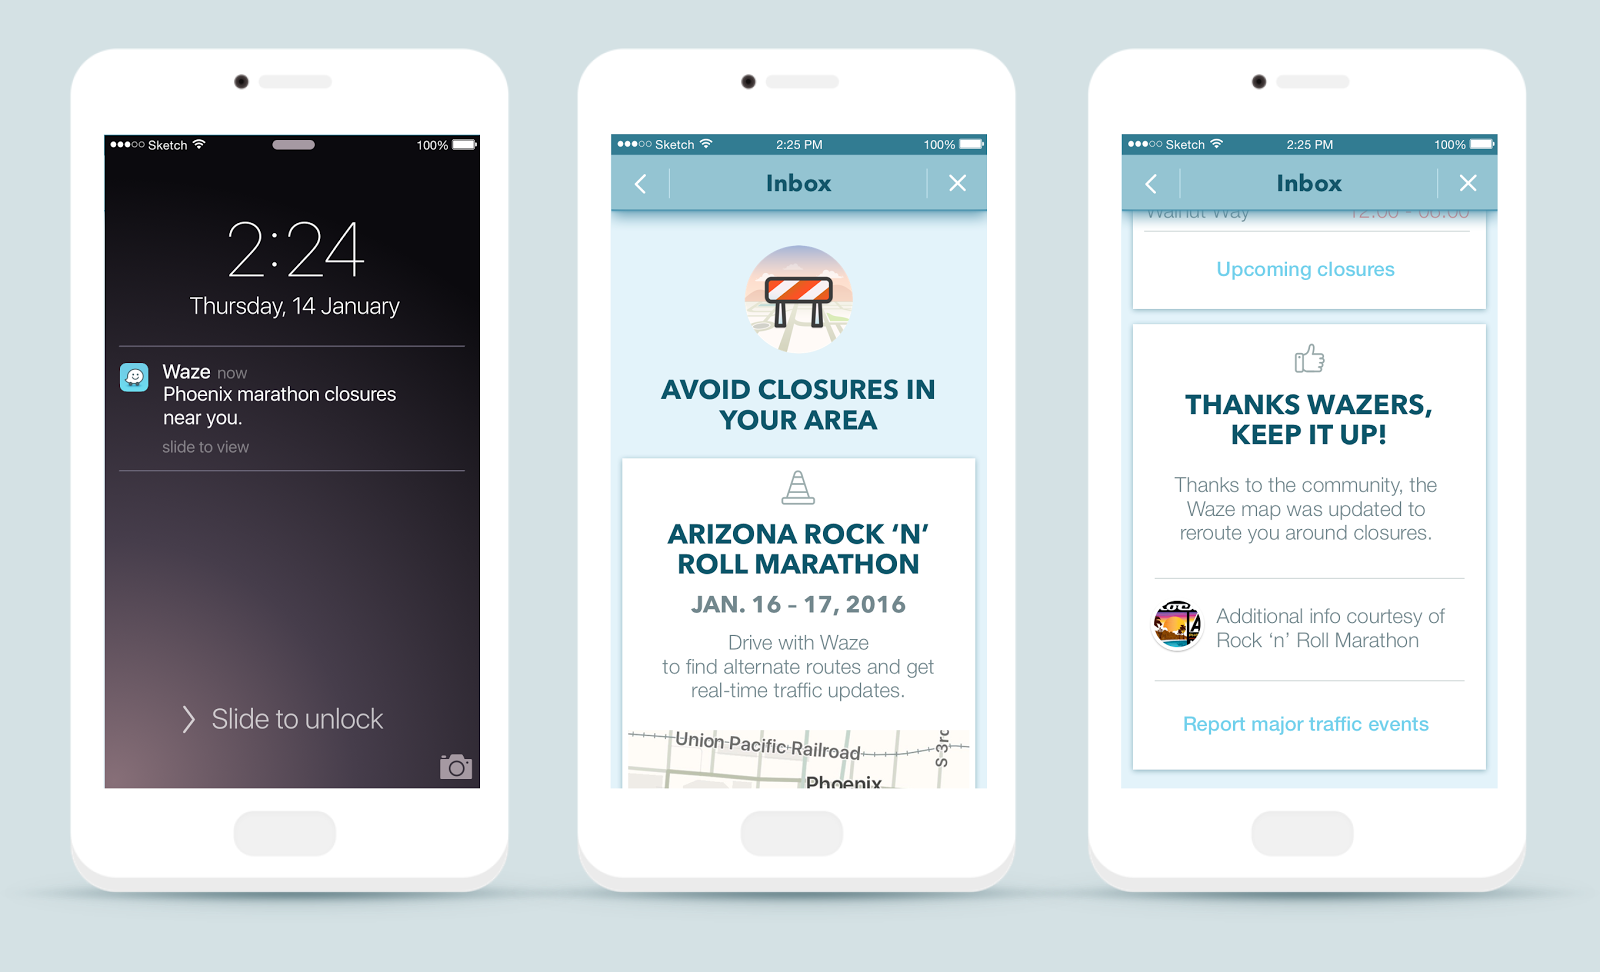 Waze Launches Partner Program to Avoid Concert Traffic